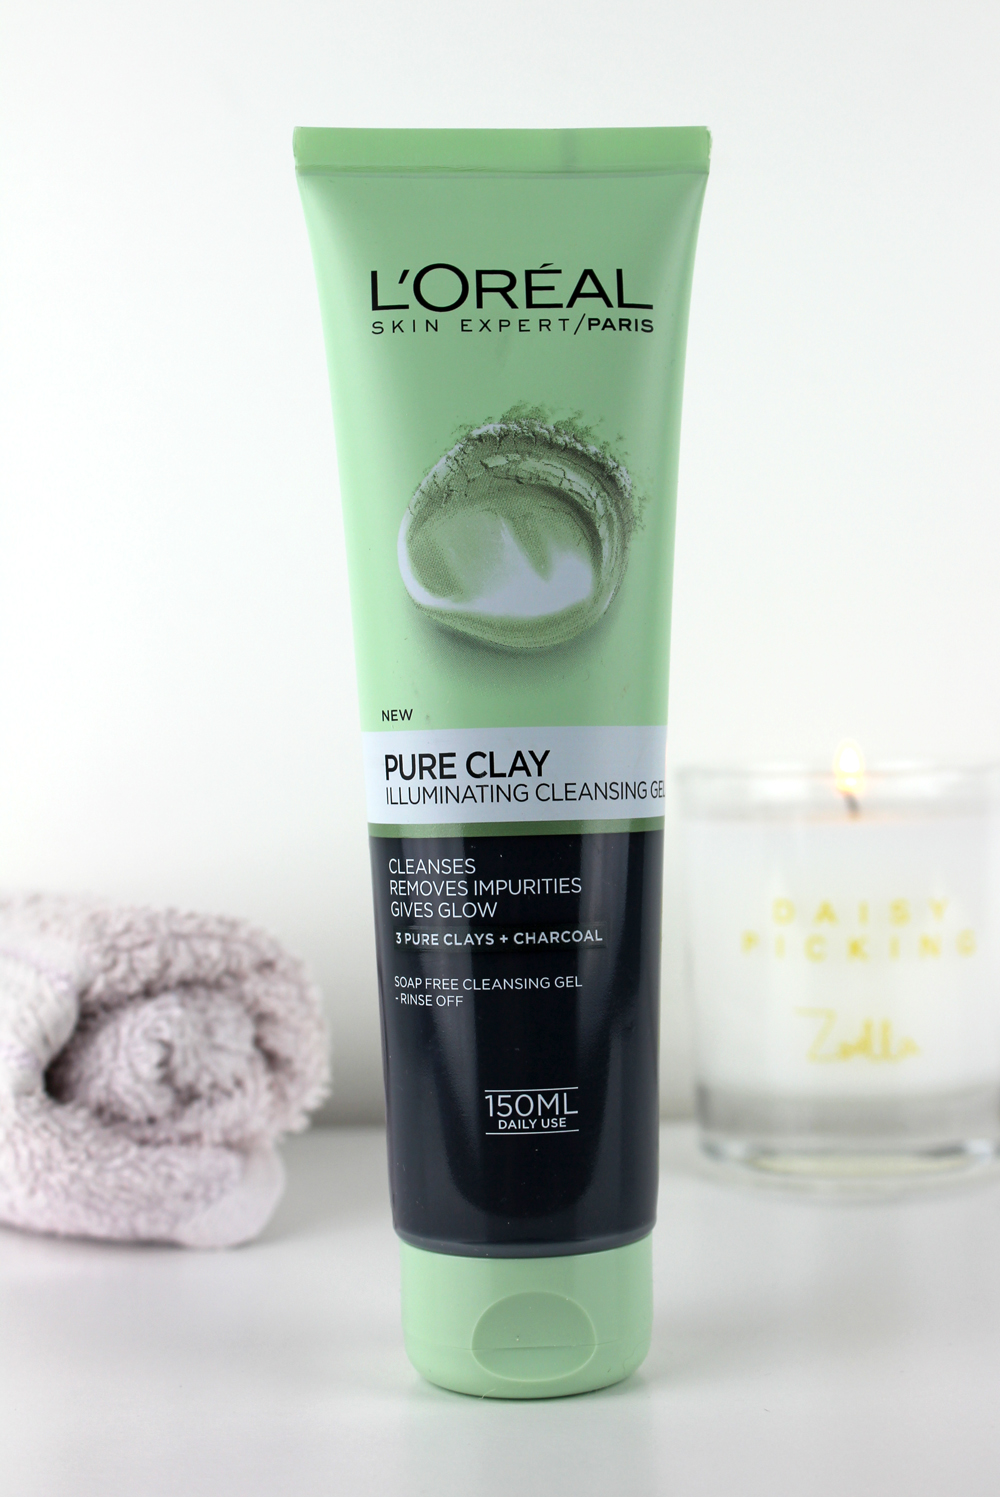 Loreal Pure Clay Illuminating Cleansing Gel